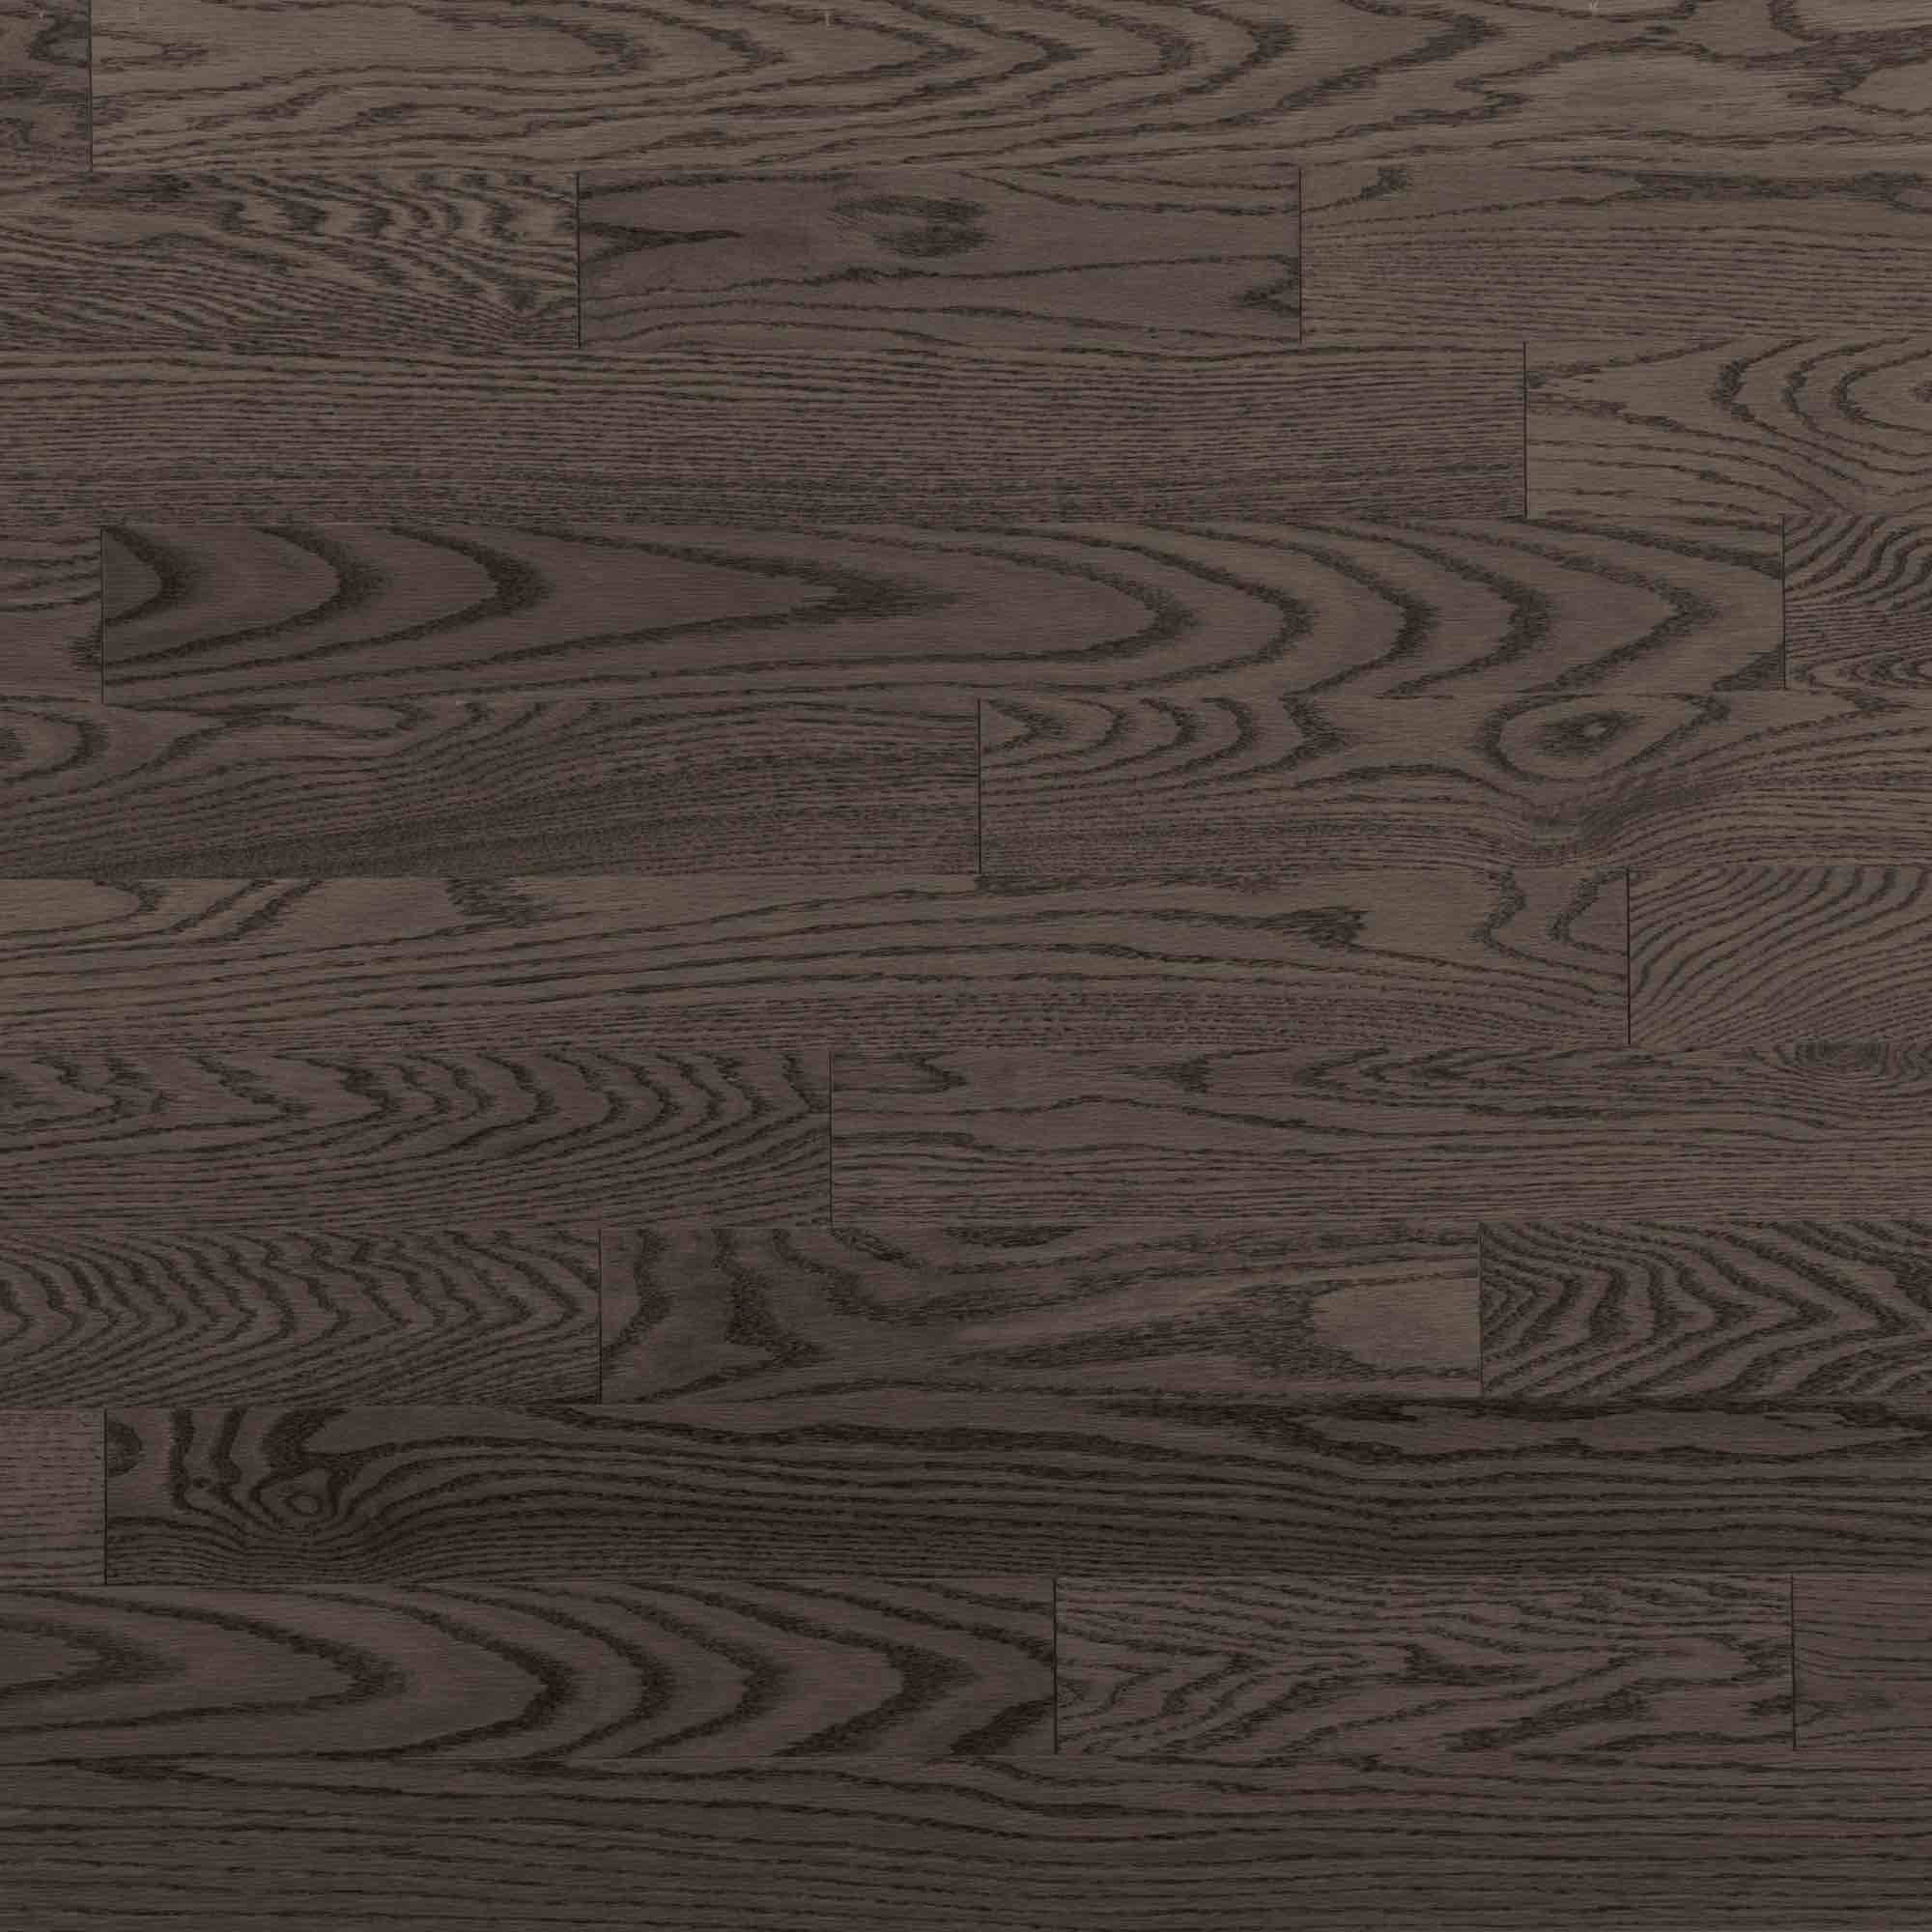 is hardwood flooring better than carpet of hardwood westfloors west vancouver hardwood flooring carpet within featured hardwoods red oak charcoal